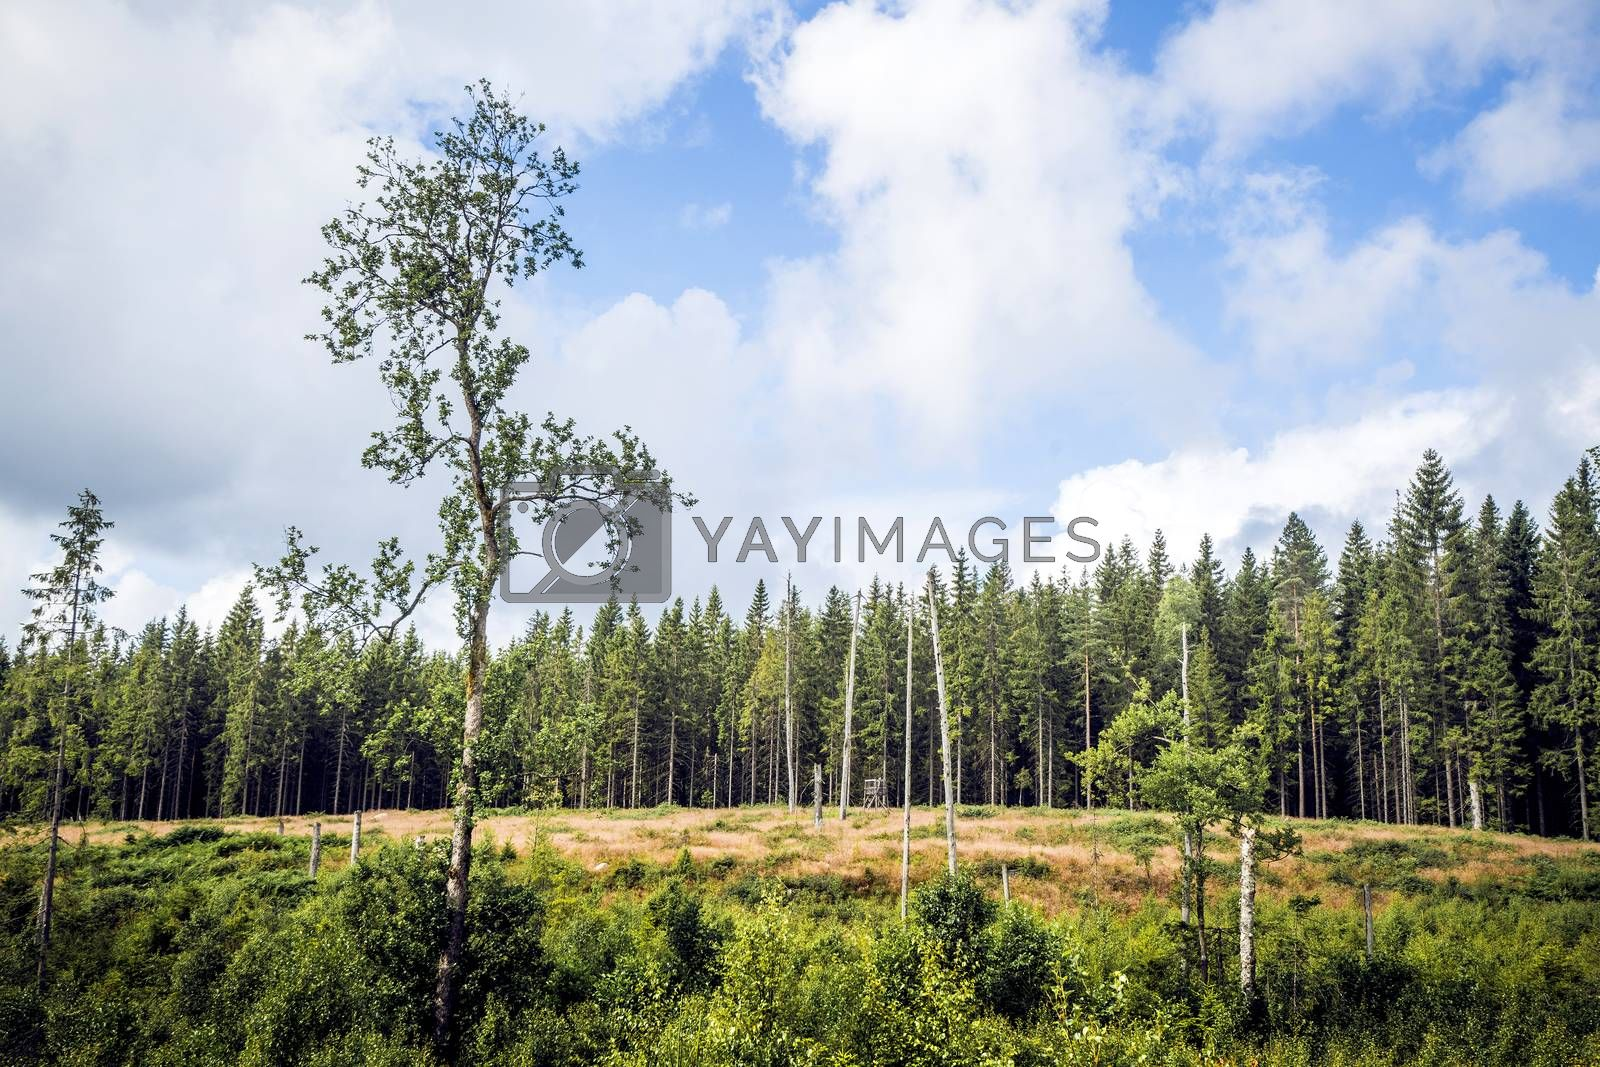 Wilderness with tall pine trees in a dry area with greem bushes and blue sky